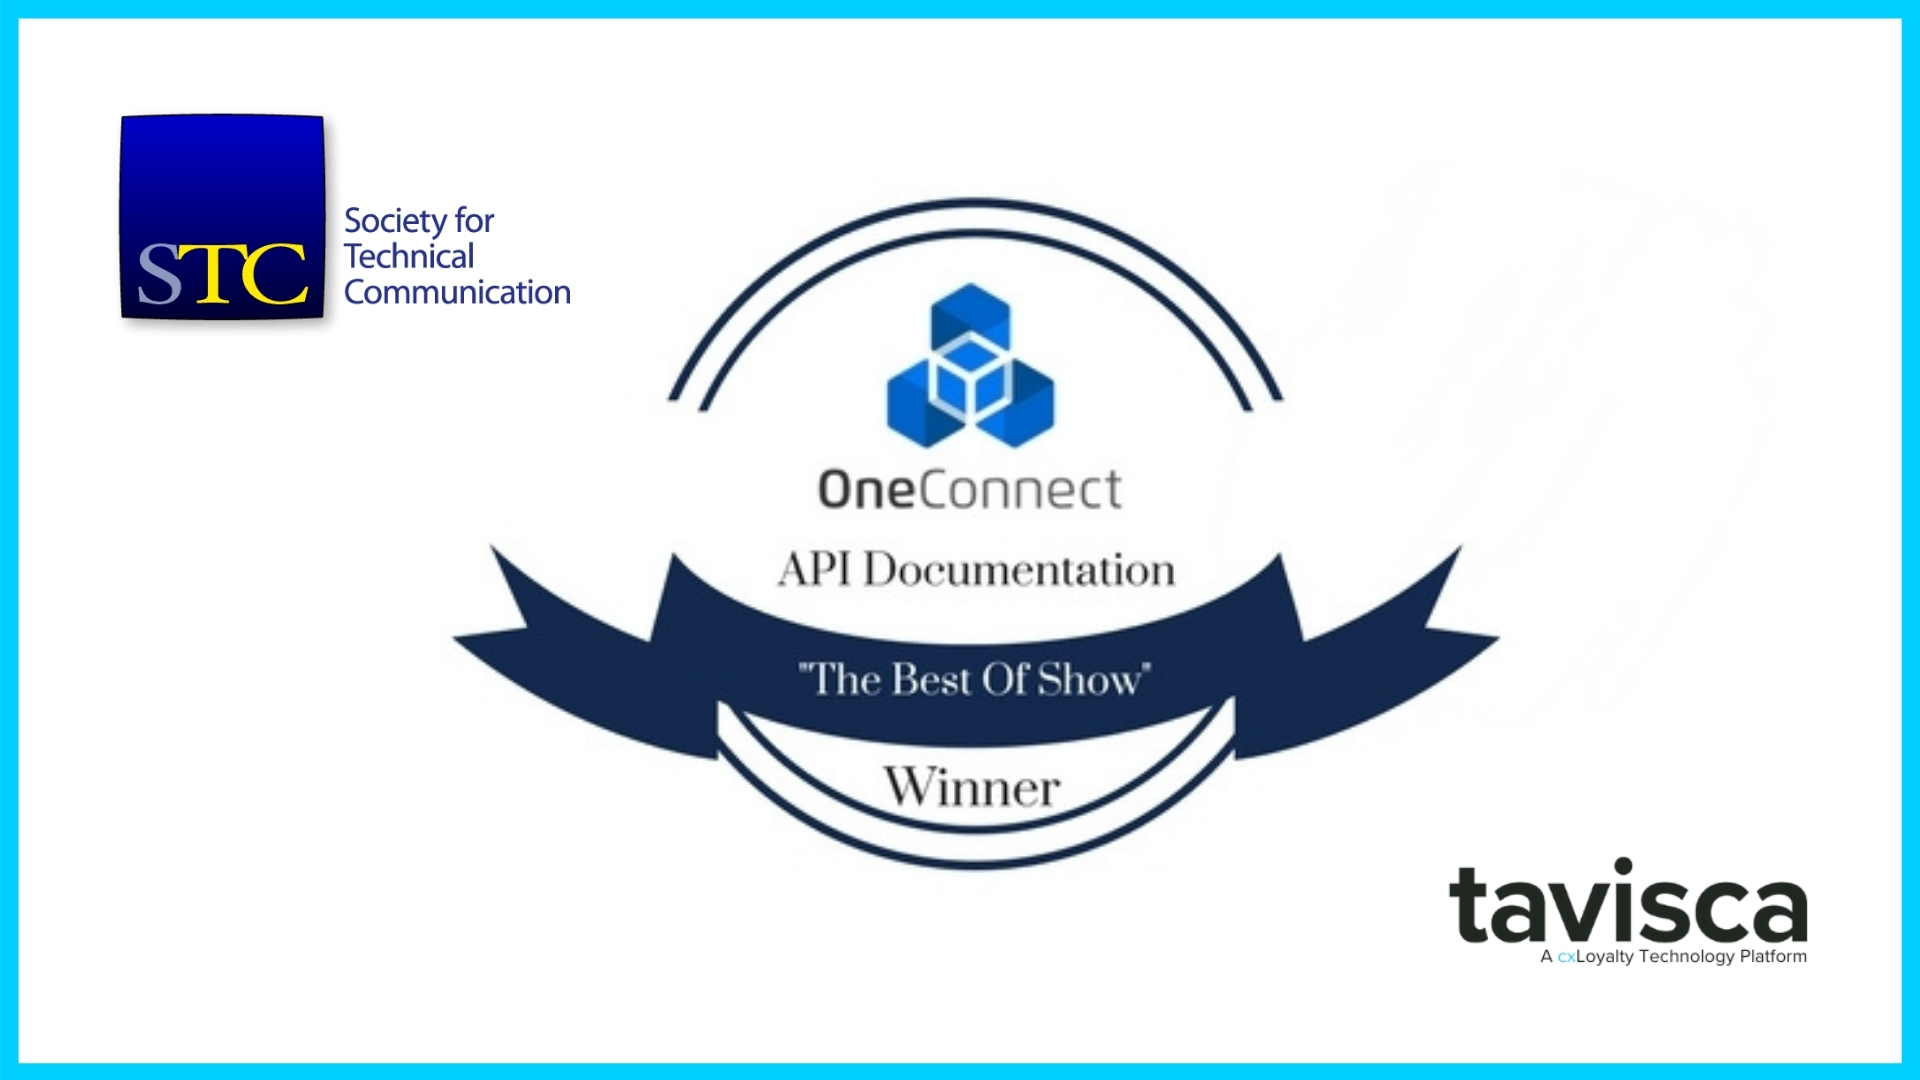 OneConnect's API Documentation Bags the 'Best of Show' Award from the STC